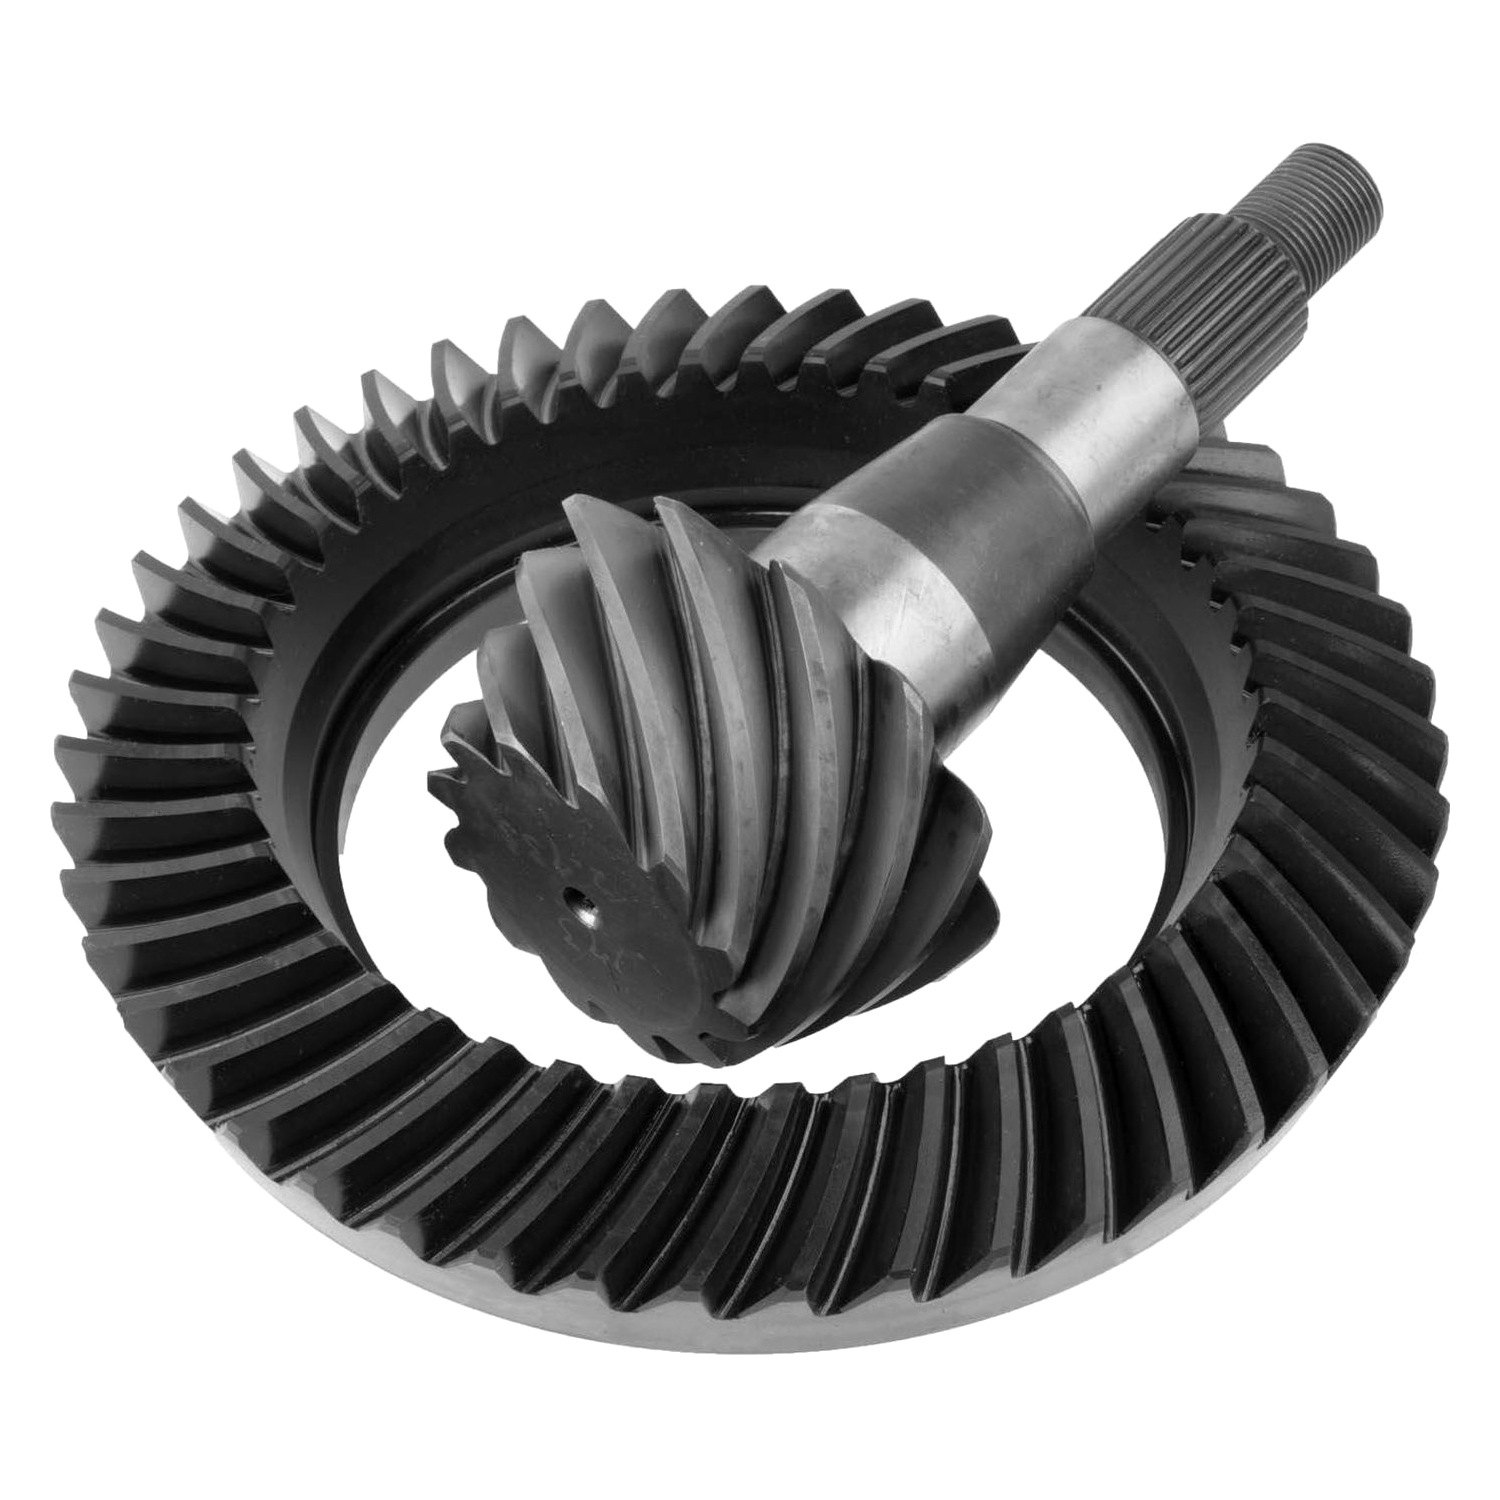 Ring And Pinion >> Motive Gear Ring And Pinion Gear Set